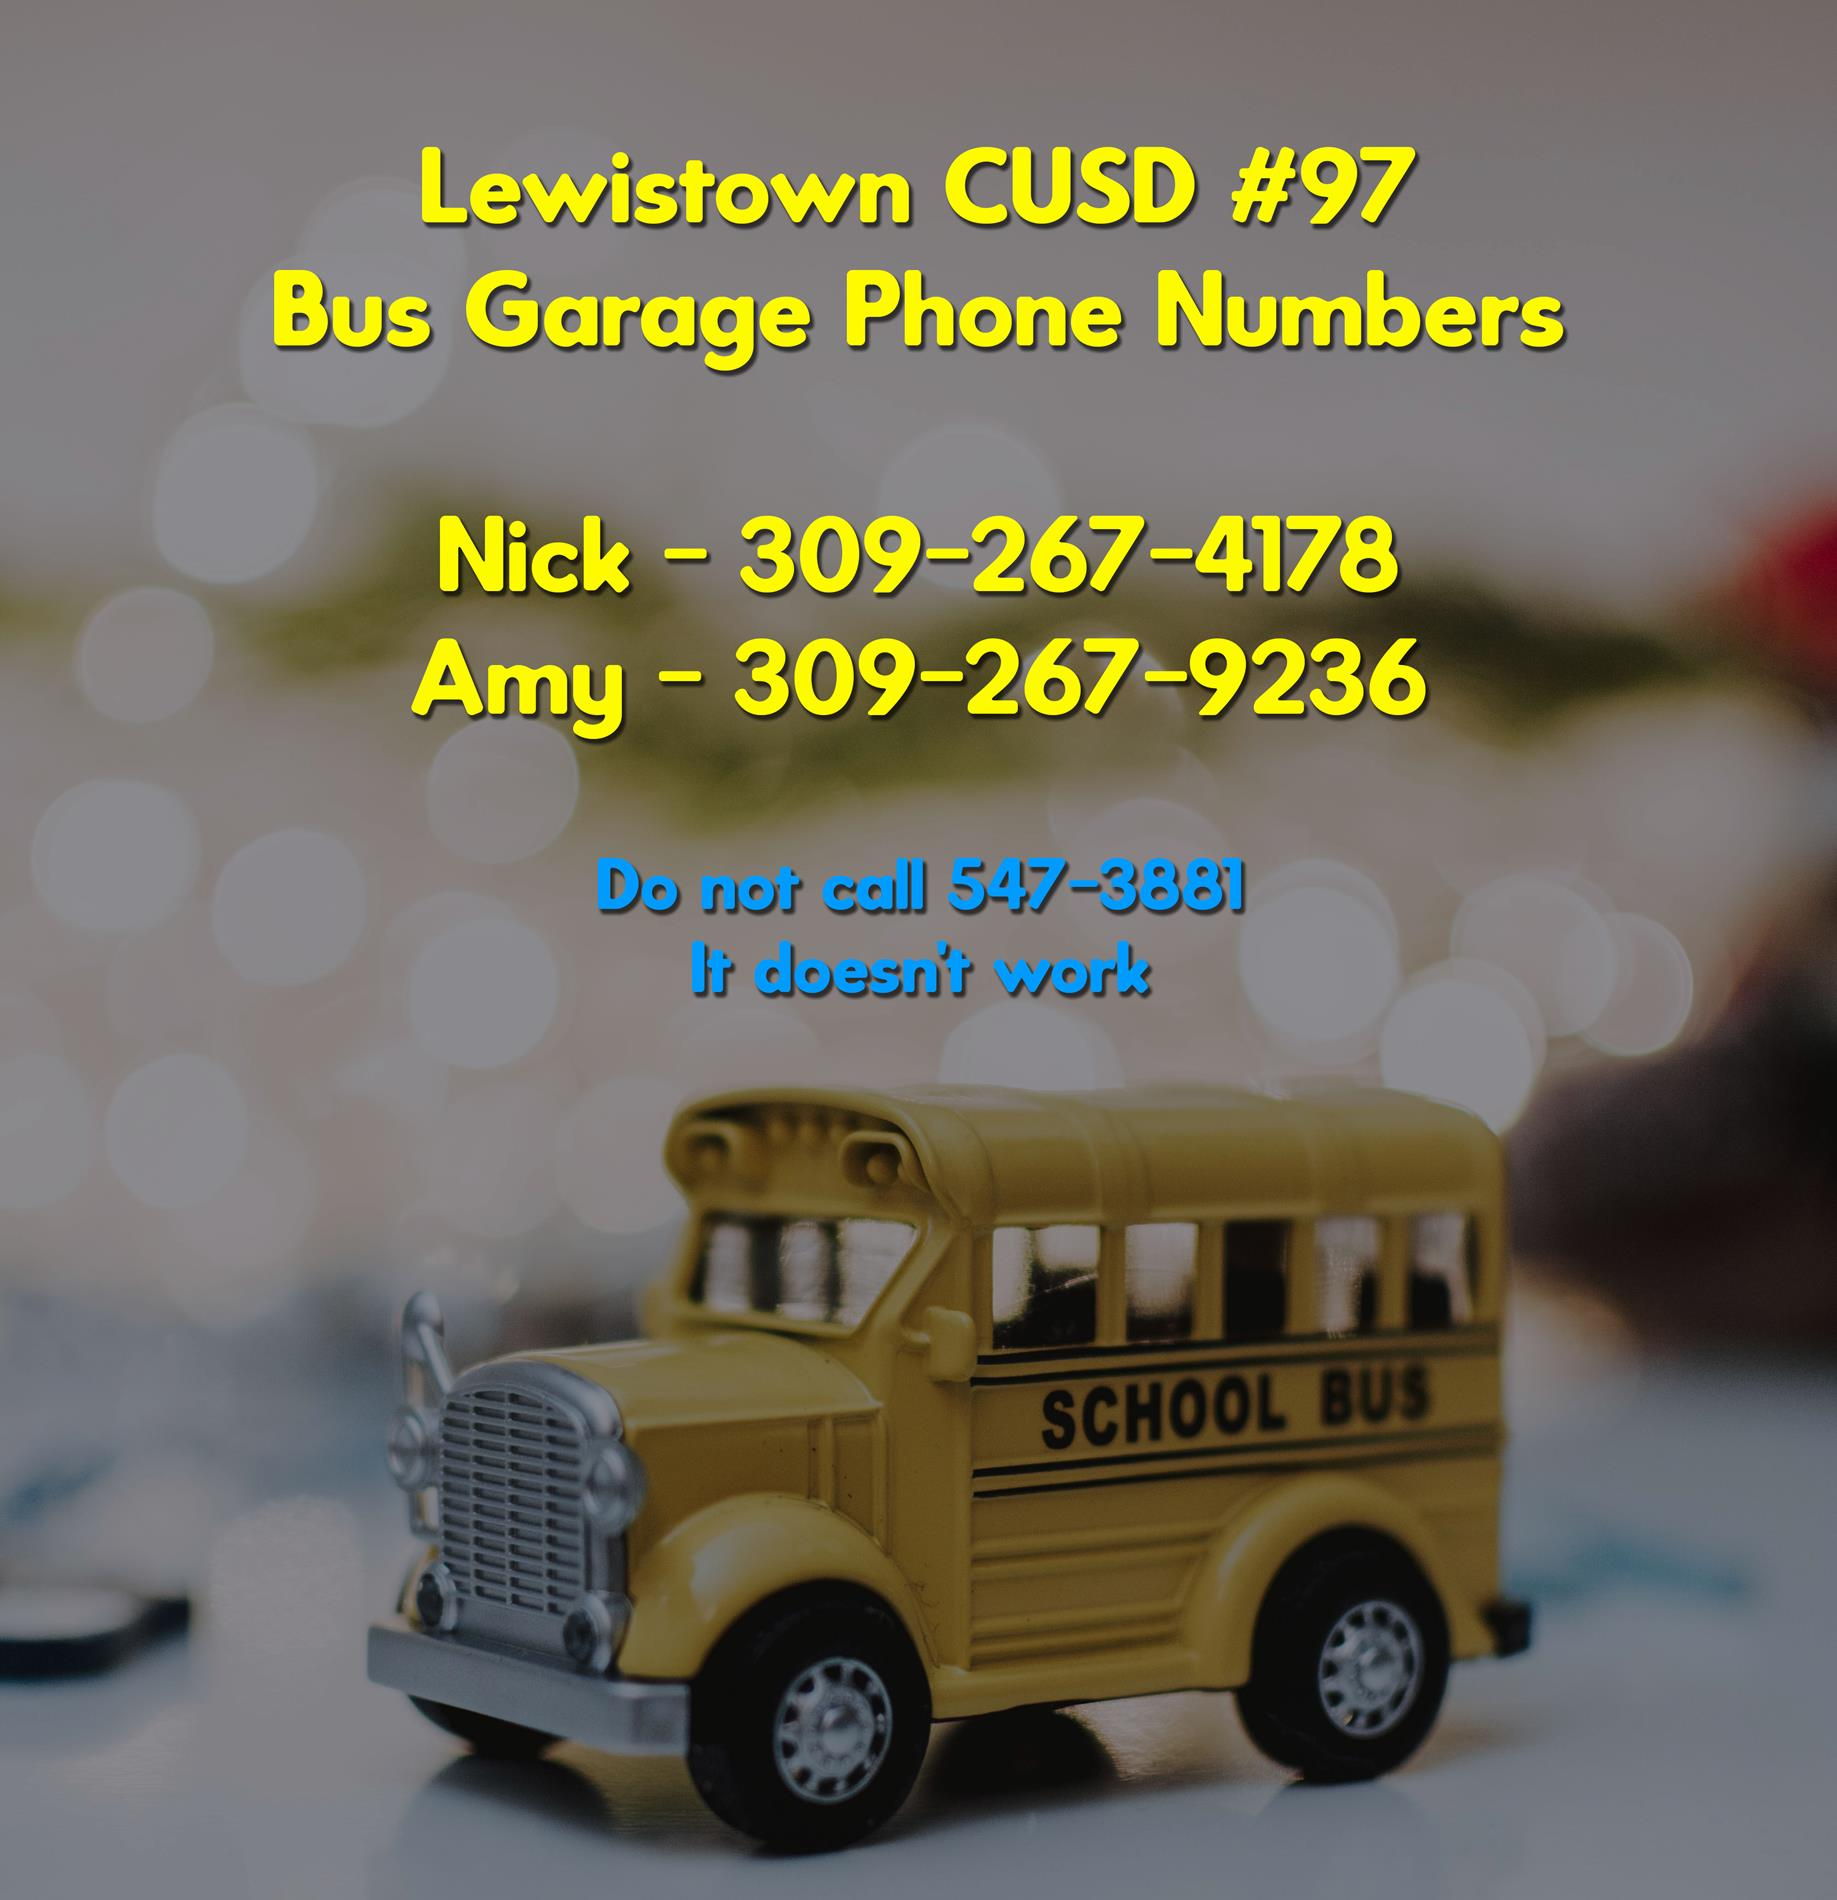 Bus Garage Contact Numbers